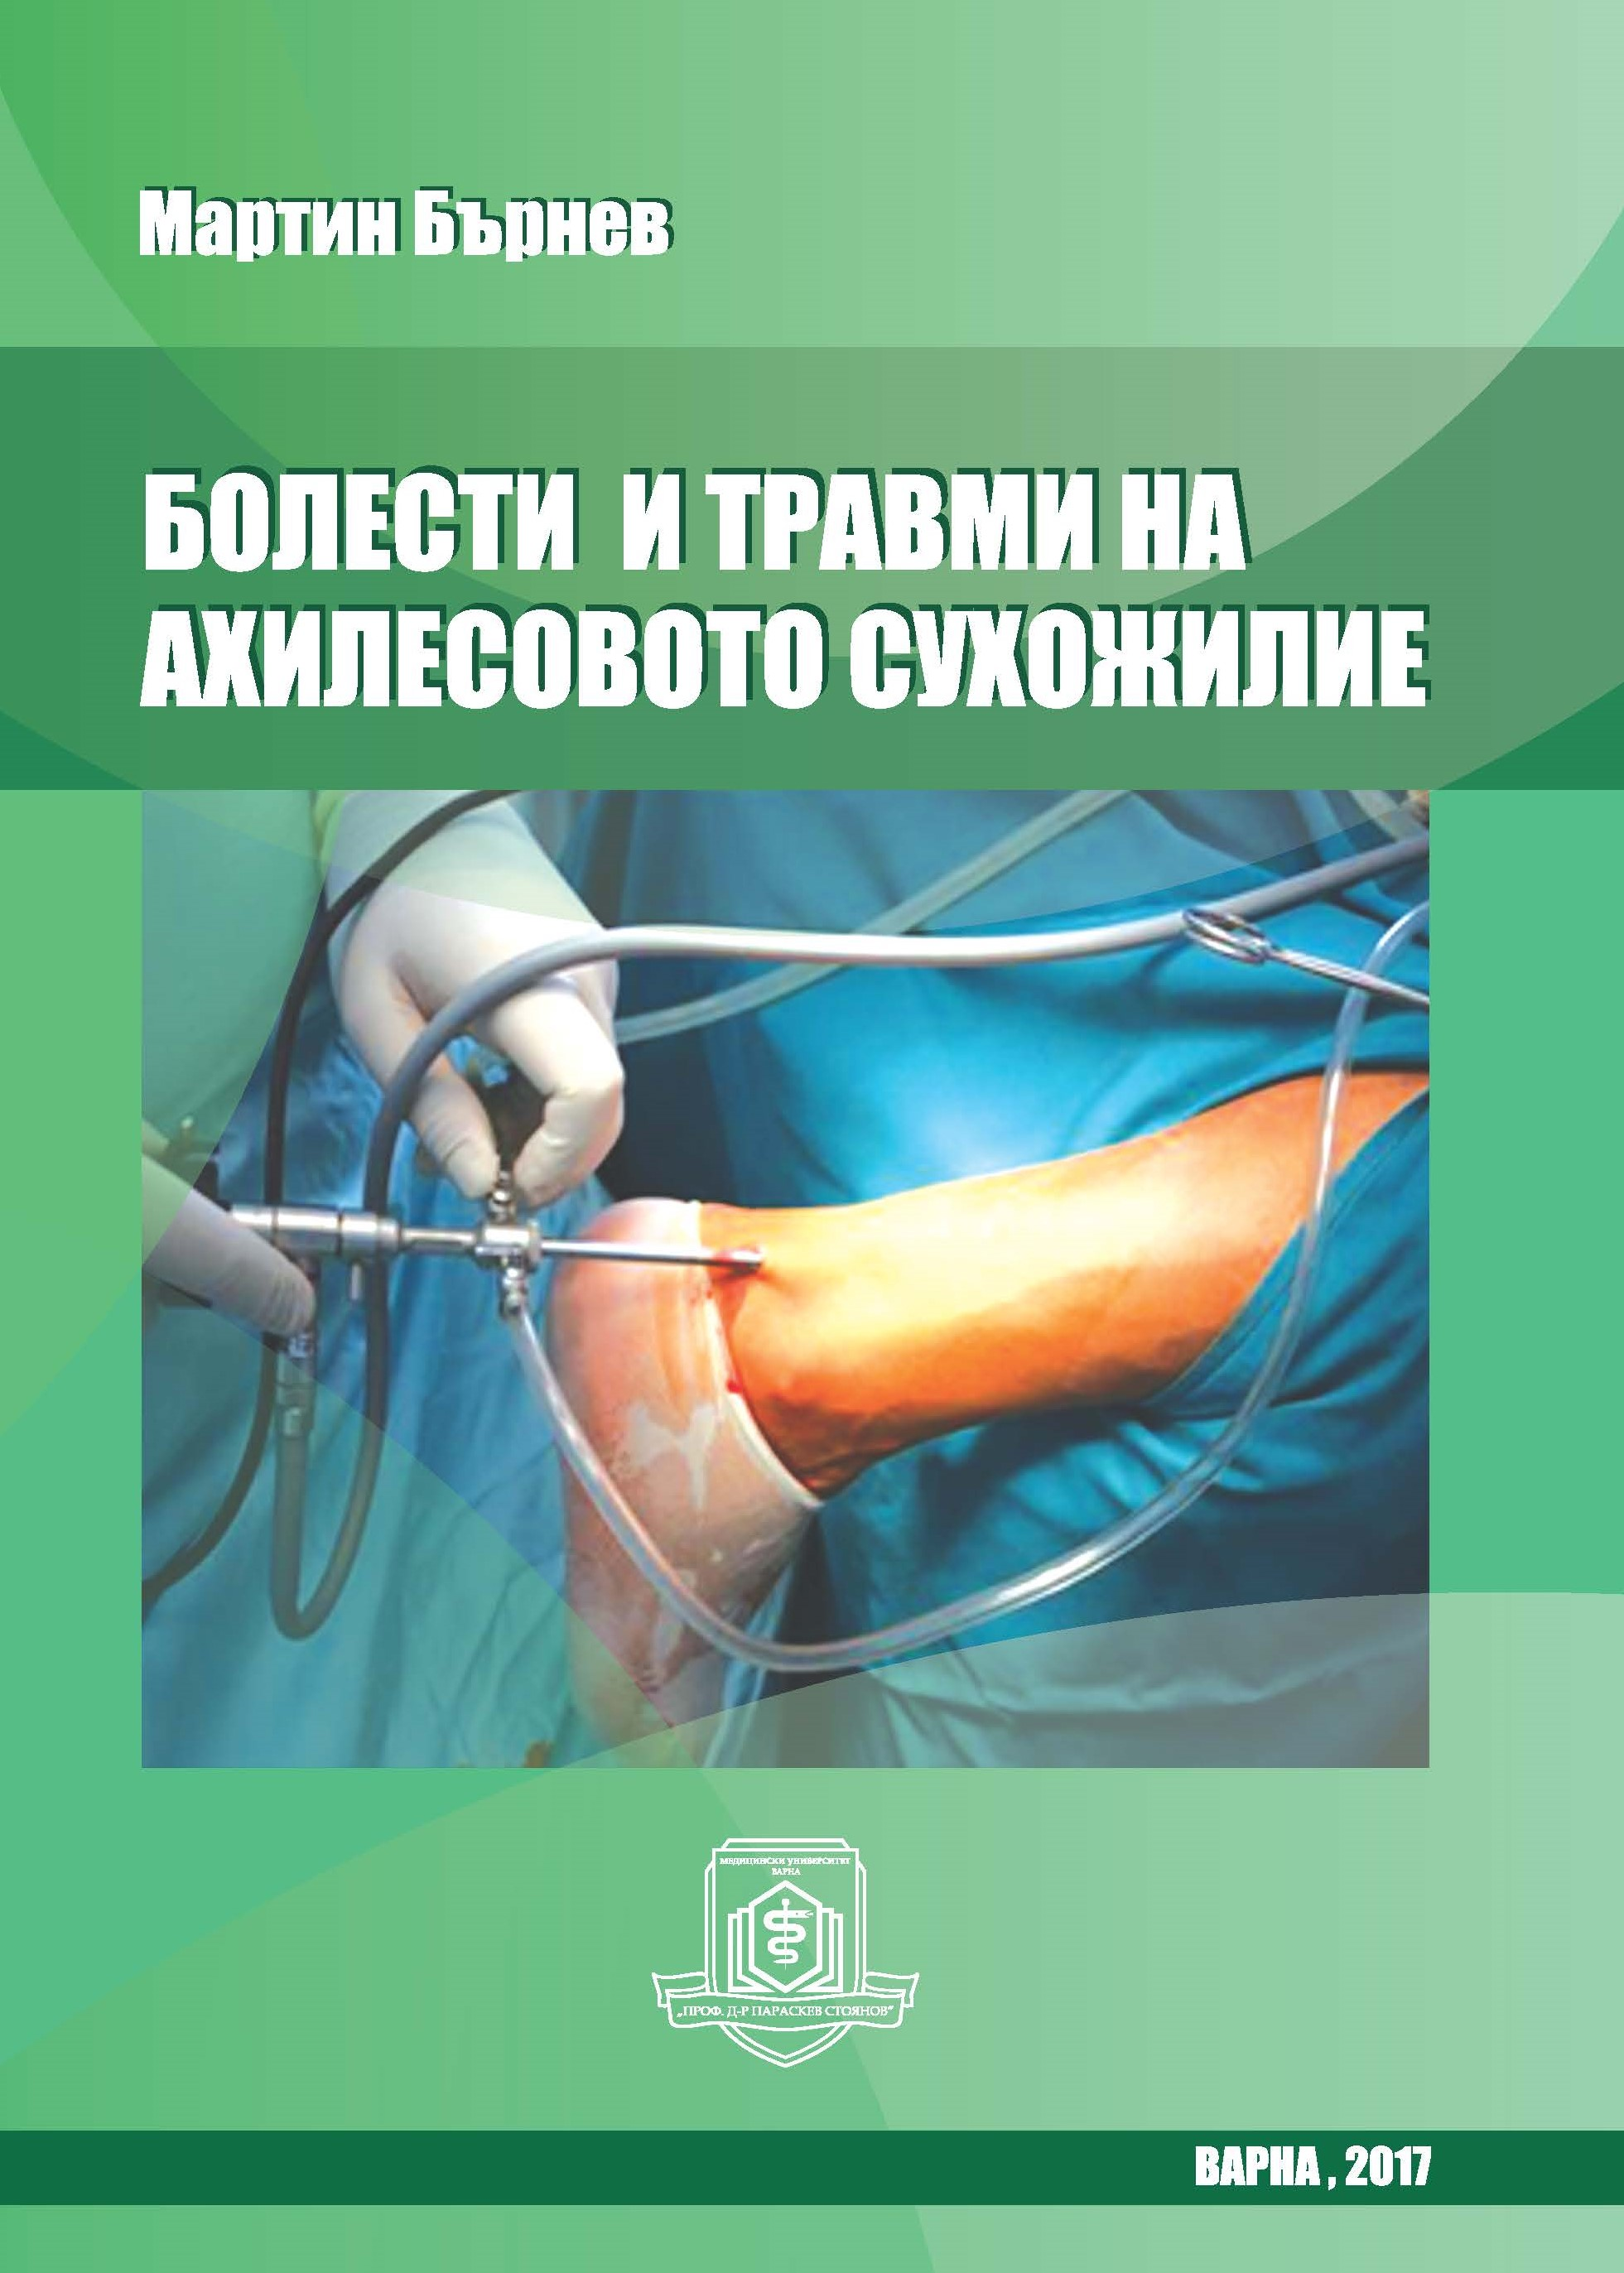 The Monograph of Martin Barnev Illnesses and Injuries of the Achilles Tendon Is Available in Our Stores